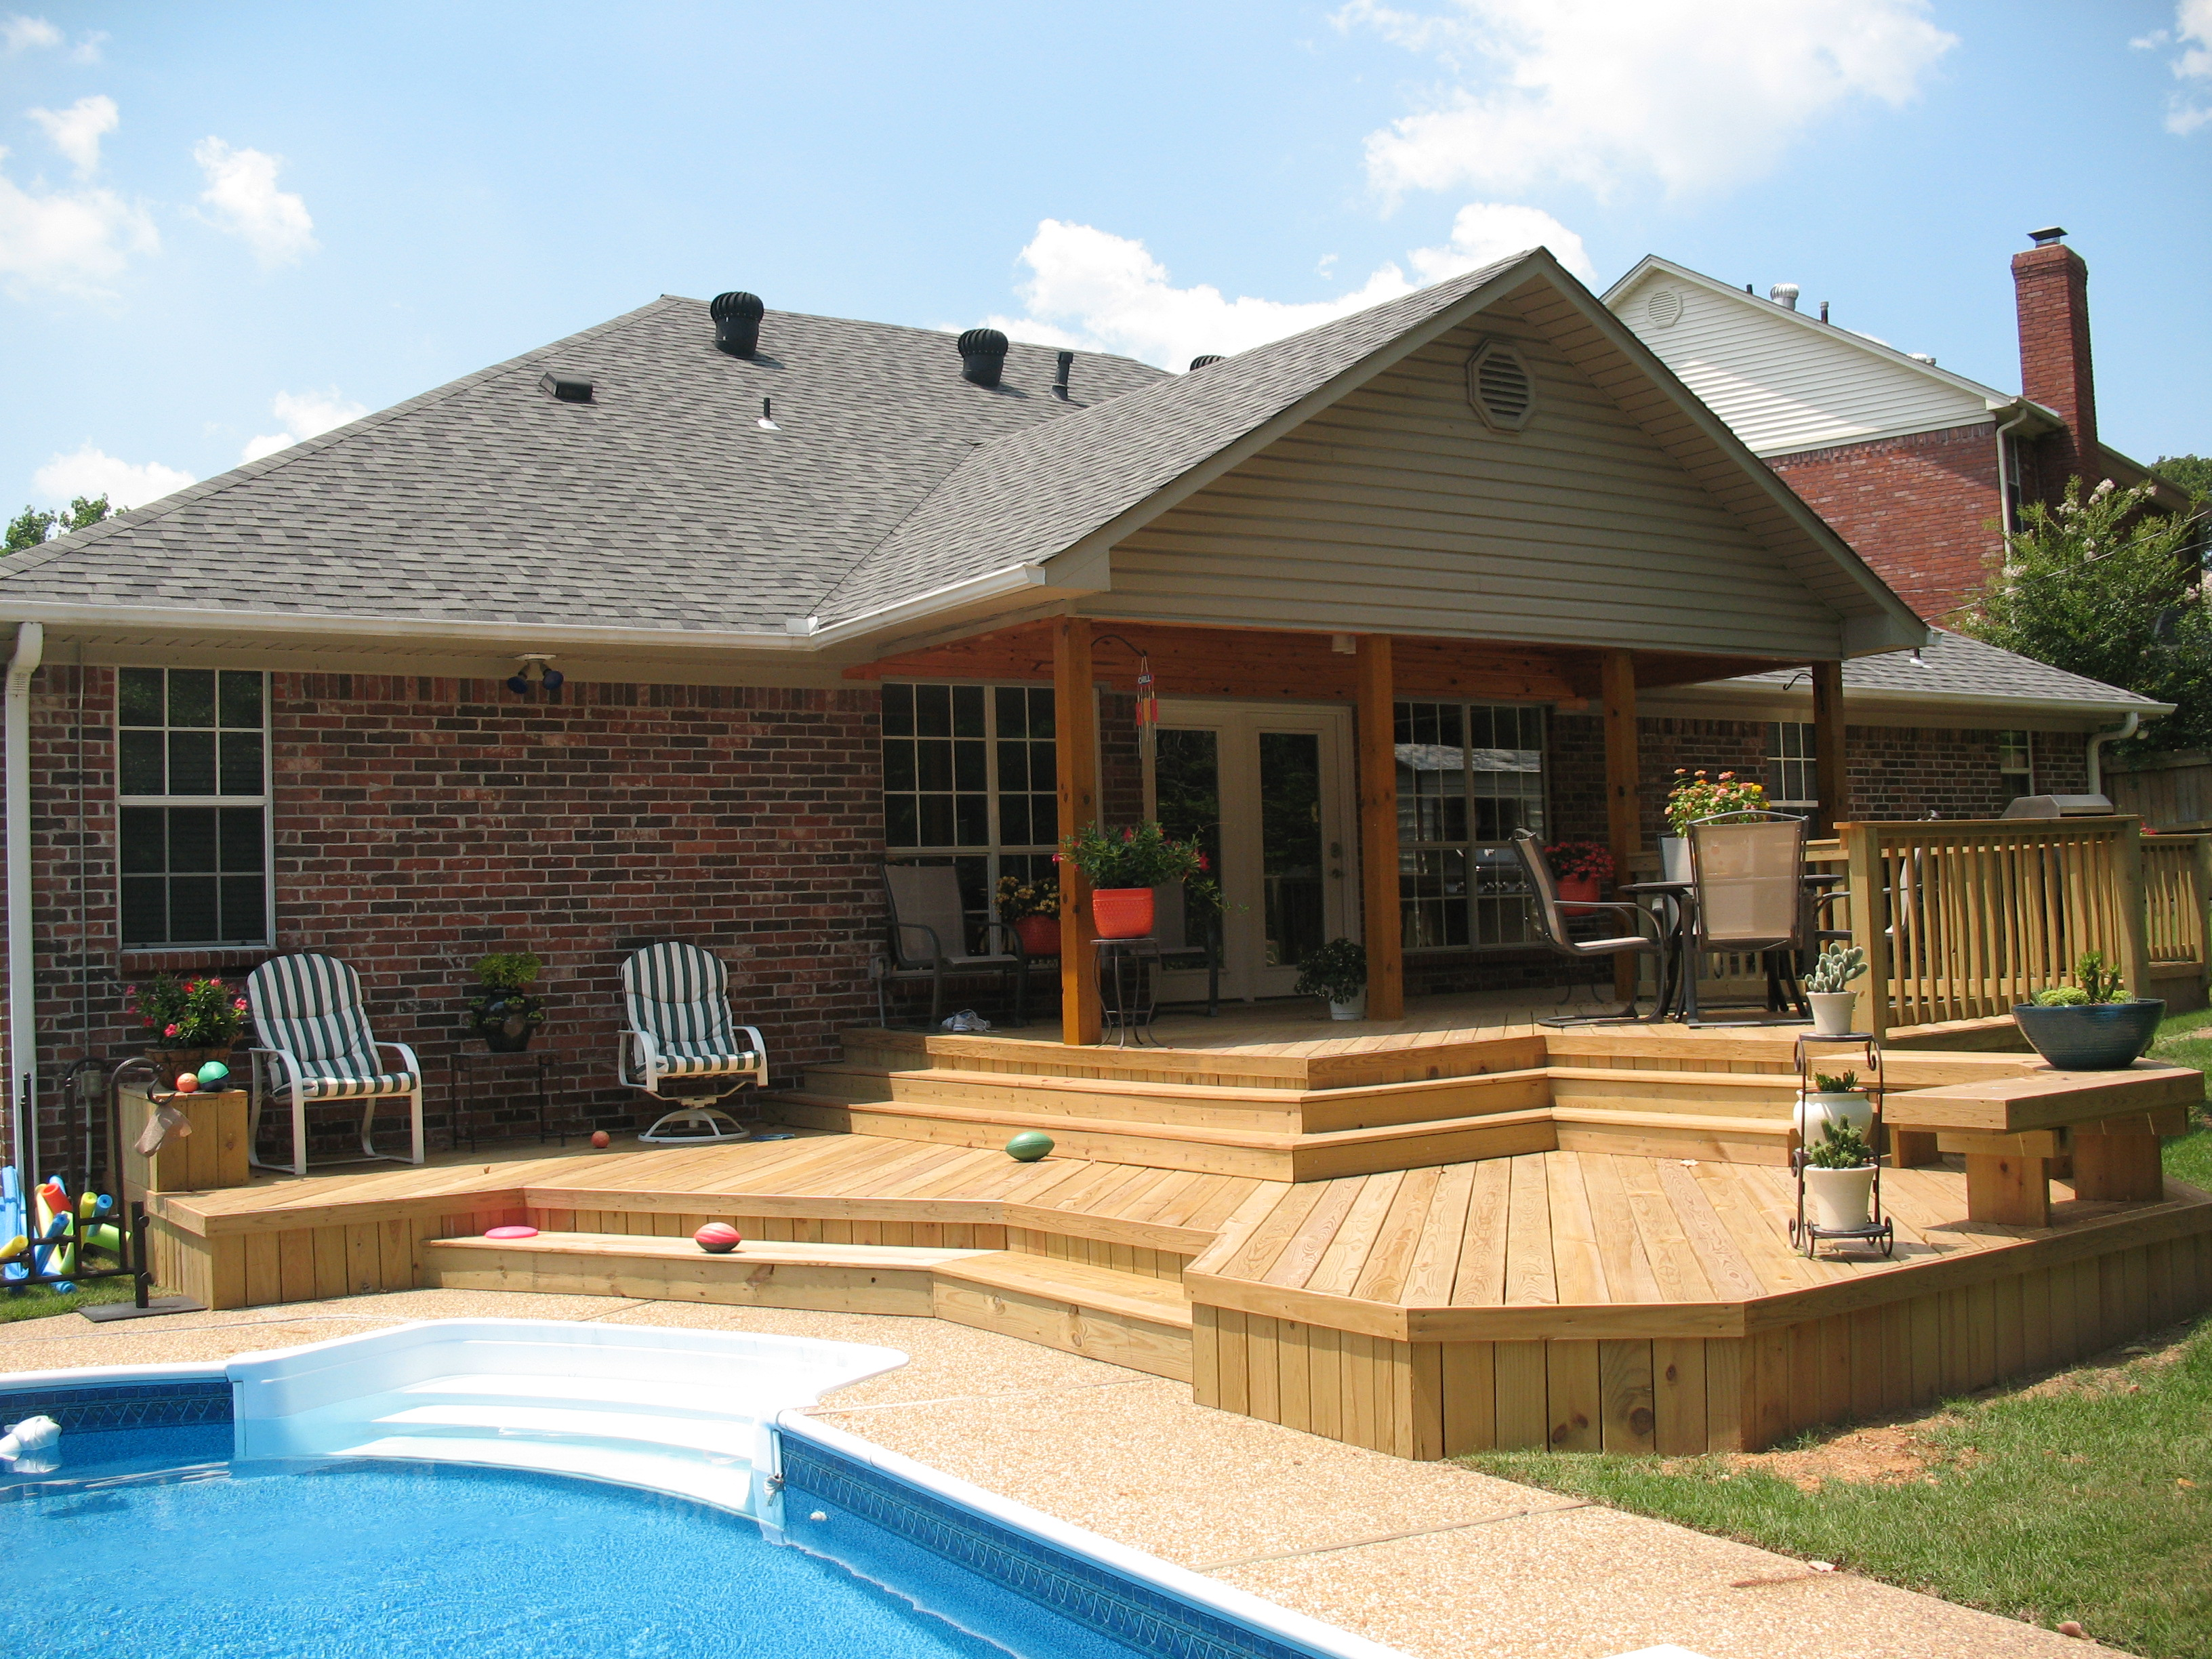 St. Louis Mo: Back to basics with wood decks by Archadeck ... on Patio With Deck Ideas id=44192